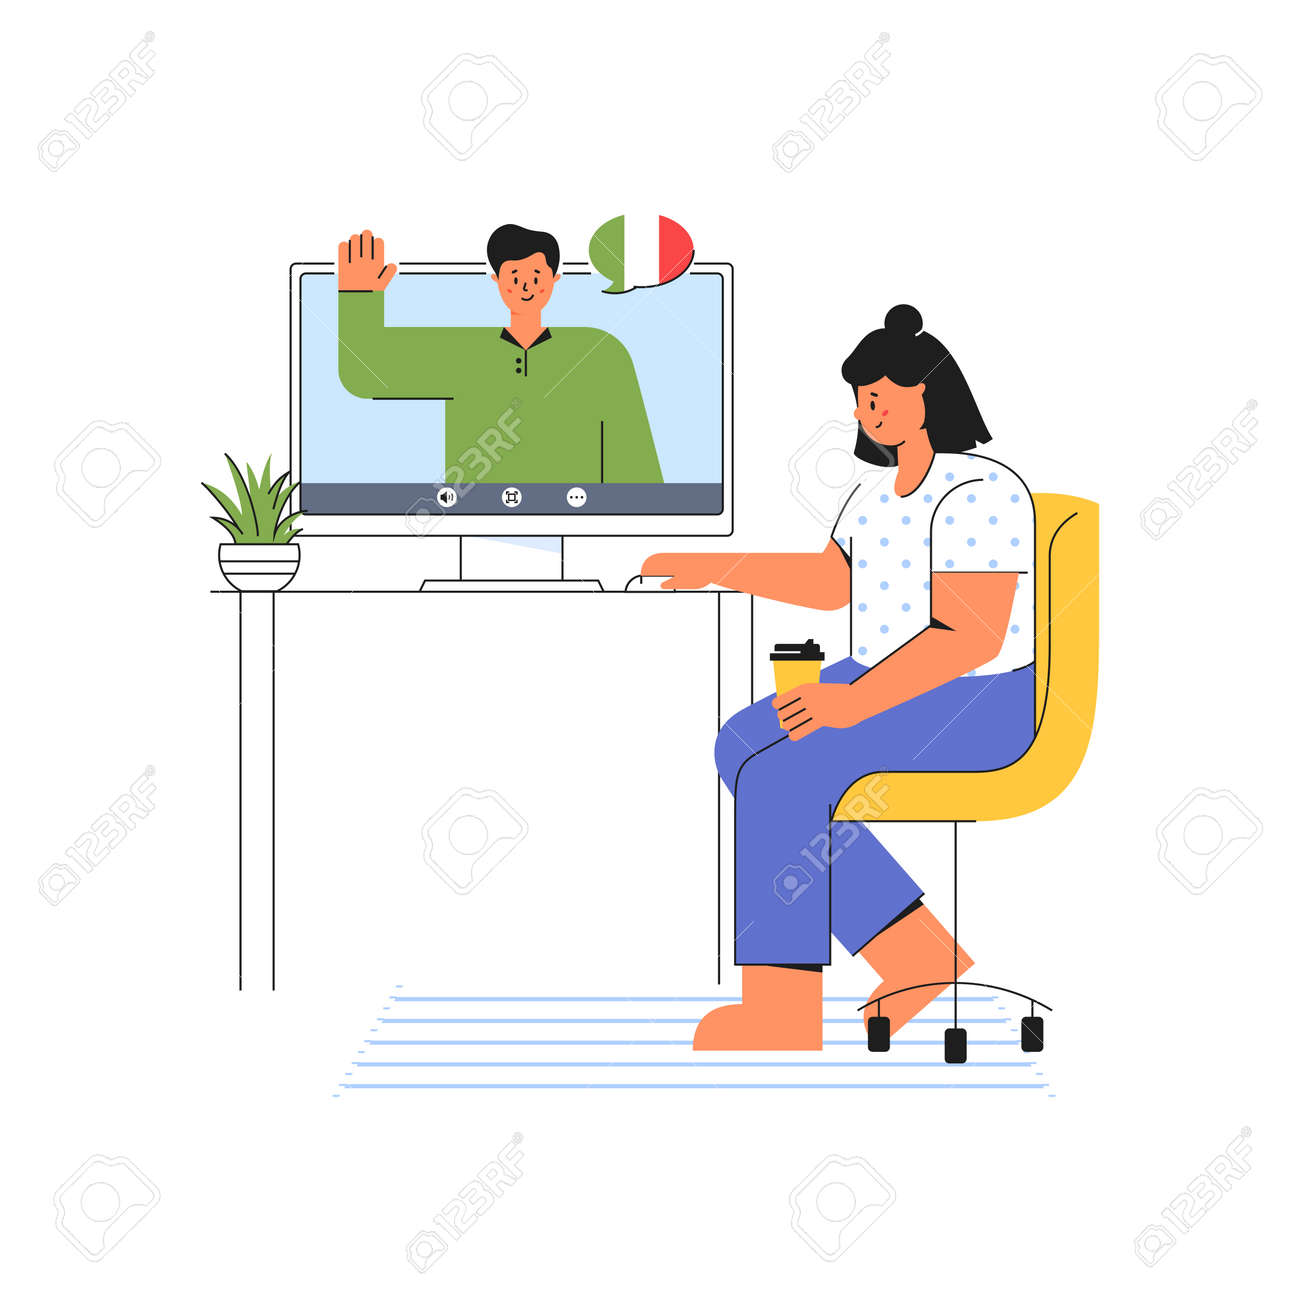 E-learning at home. Young woman listens to the teacher of Italian language. Online course on the website. Distance education concept. Modern vector illustration isolated on a white background. - 160162616